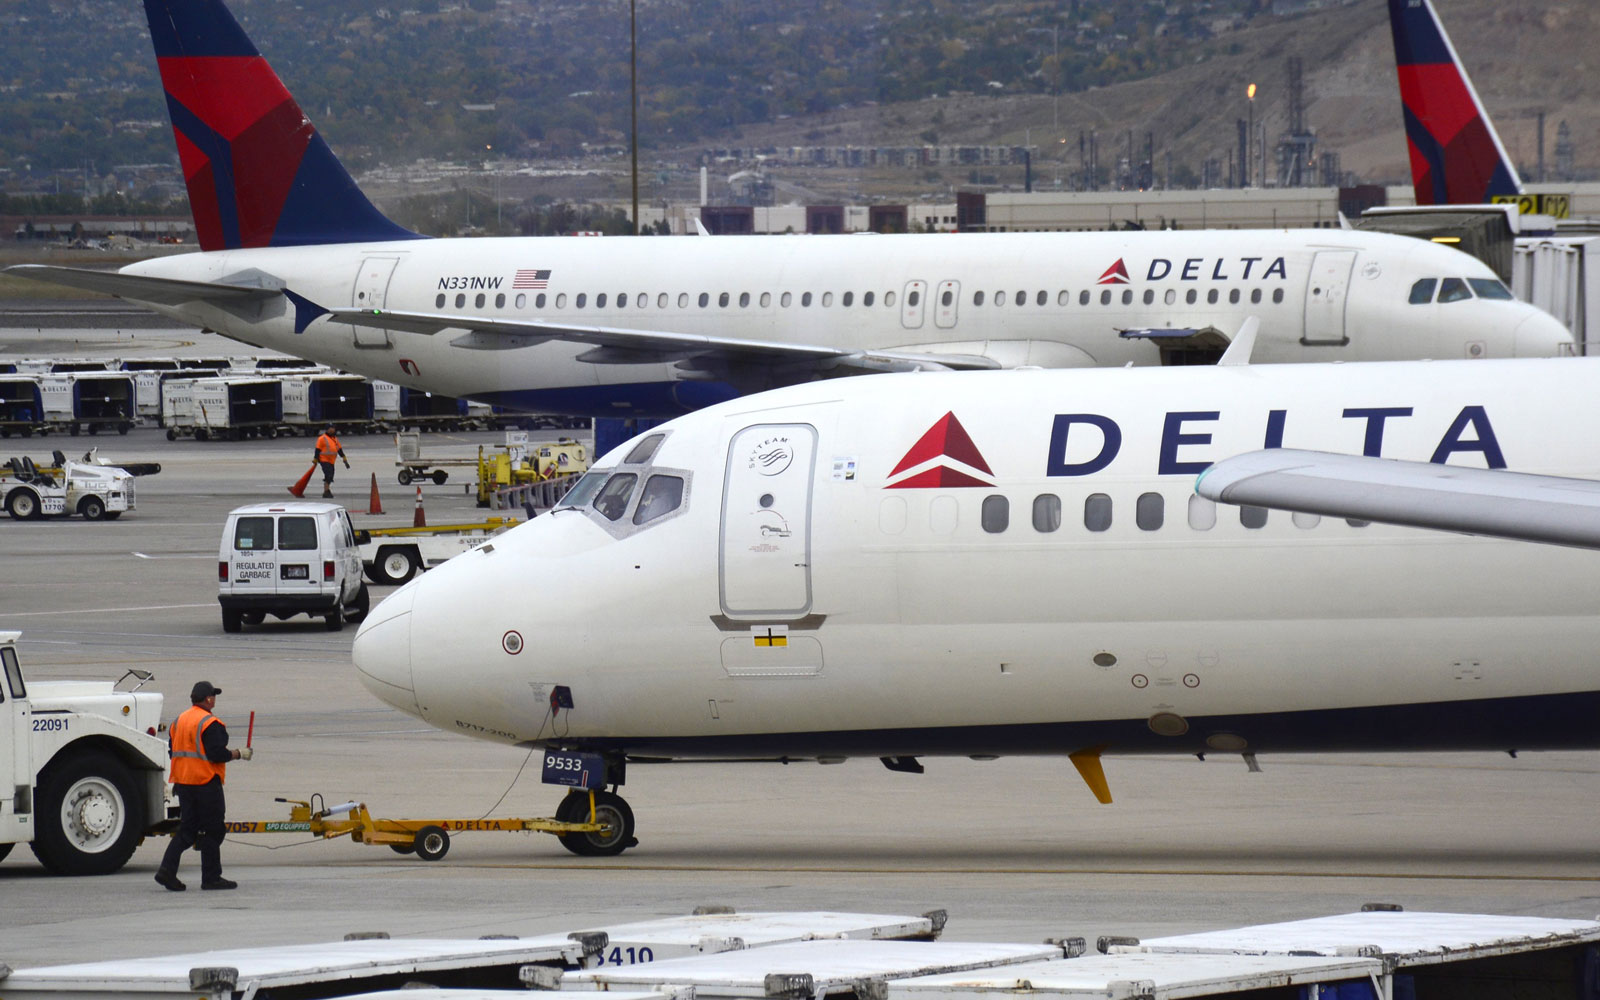 Delta banned a passenger for life after a political outburst onboard.